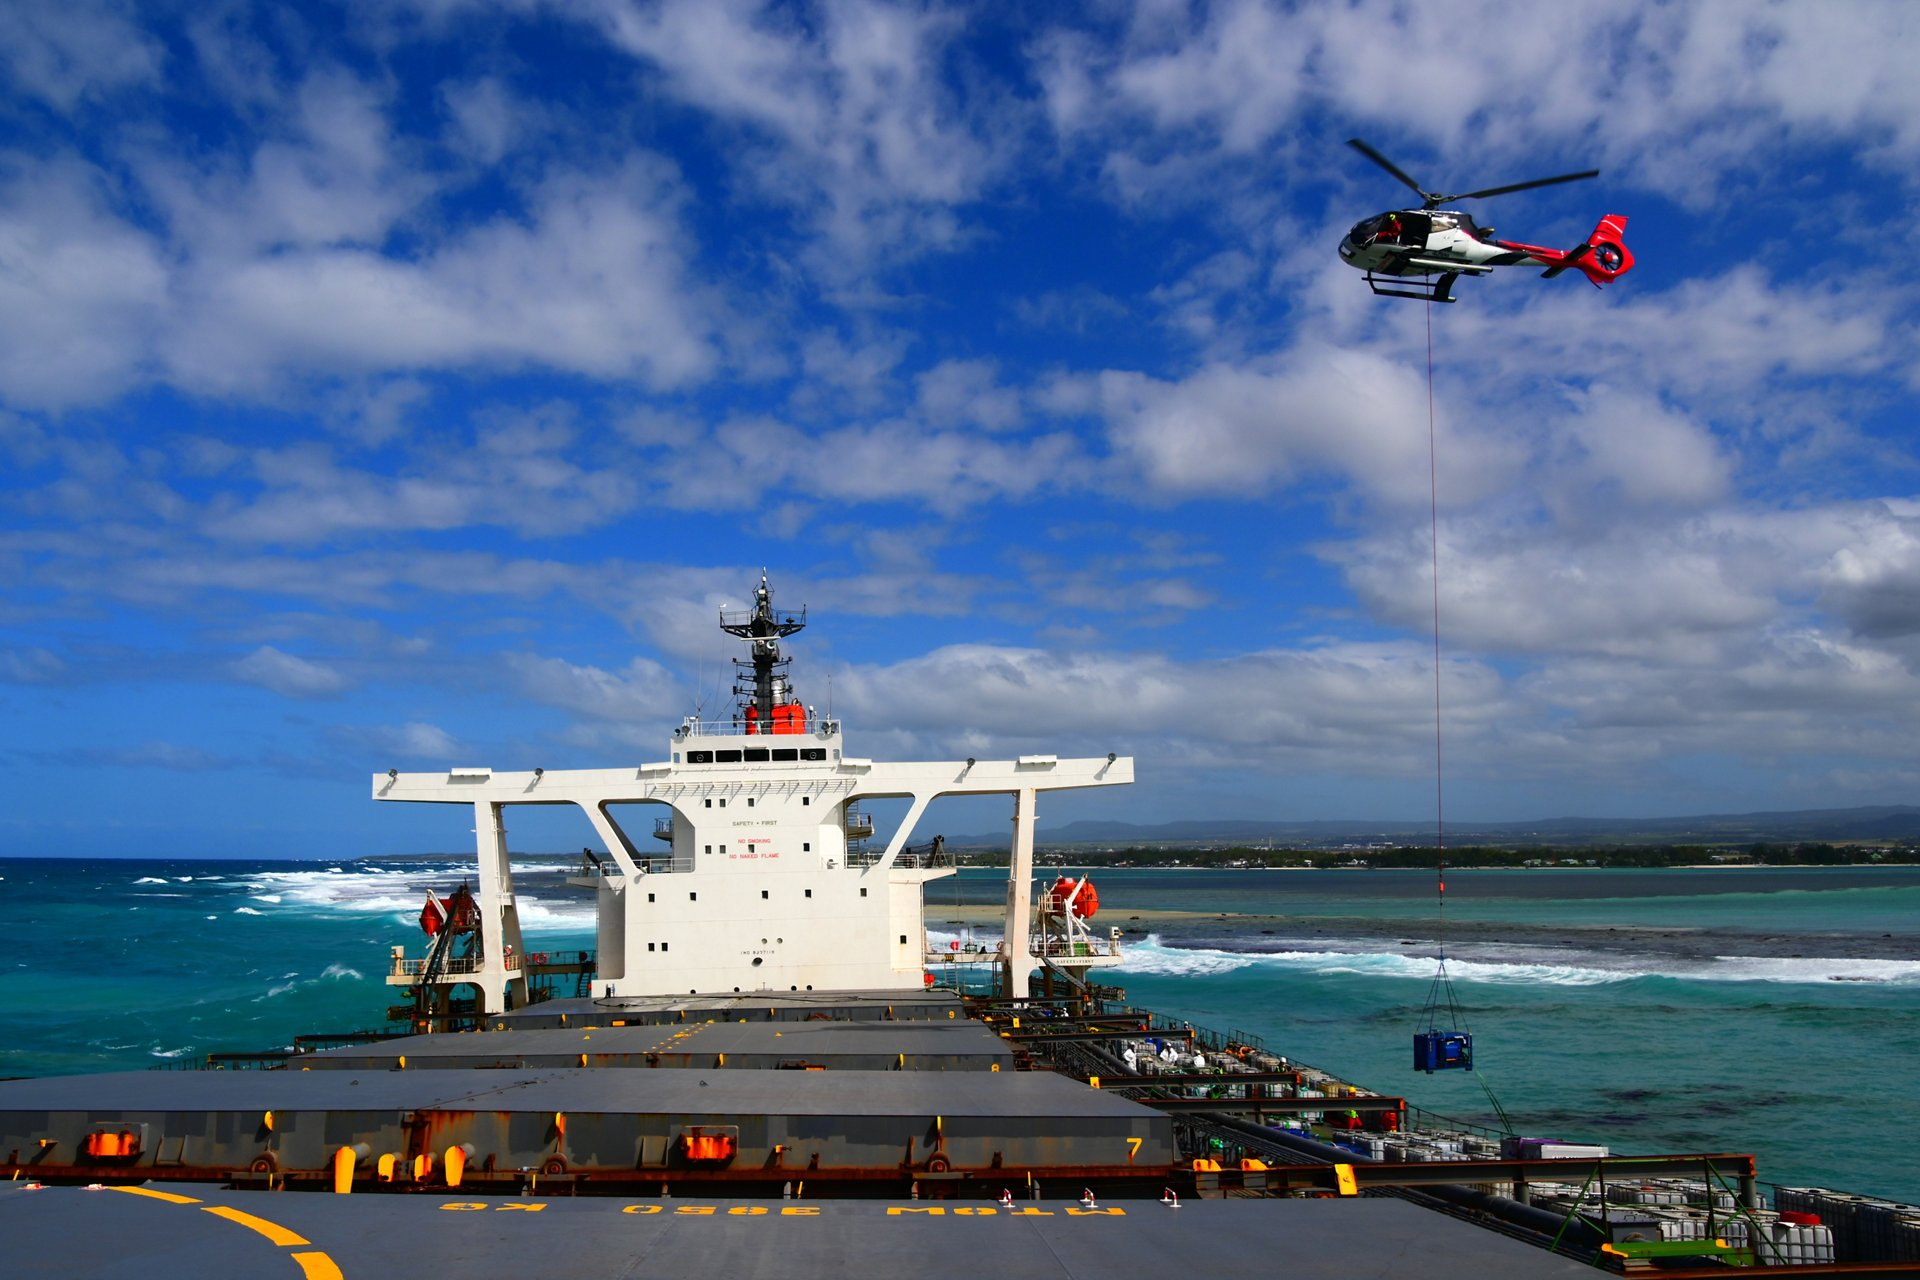 Once a tourist and passenger flight helicopter, Corail Helicopters Mauritius equipped their H130 with a hook and sling, transforming it instantly into a high-performance aerial work platform.